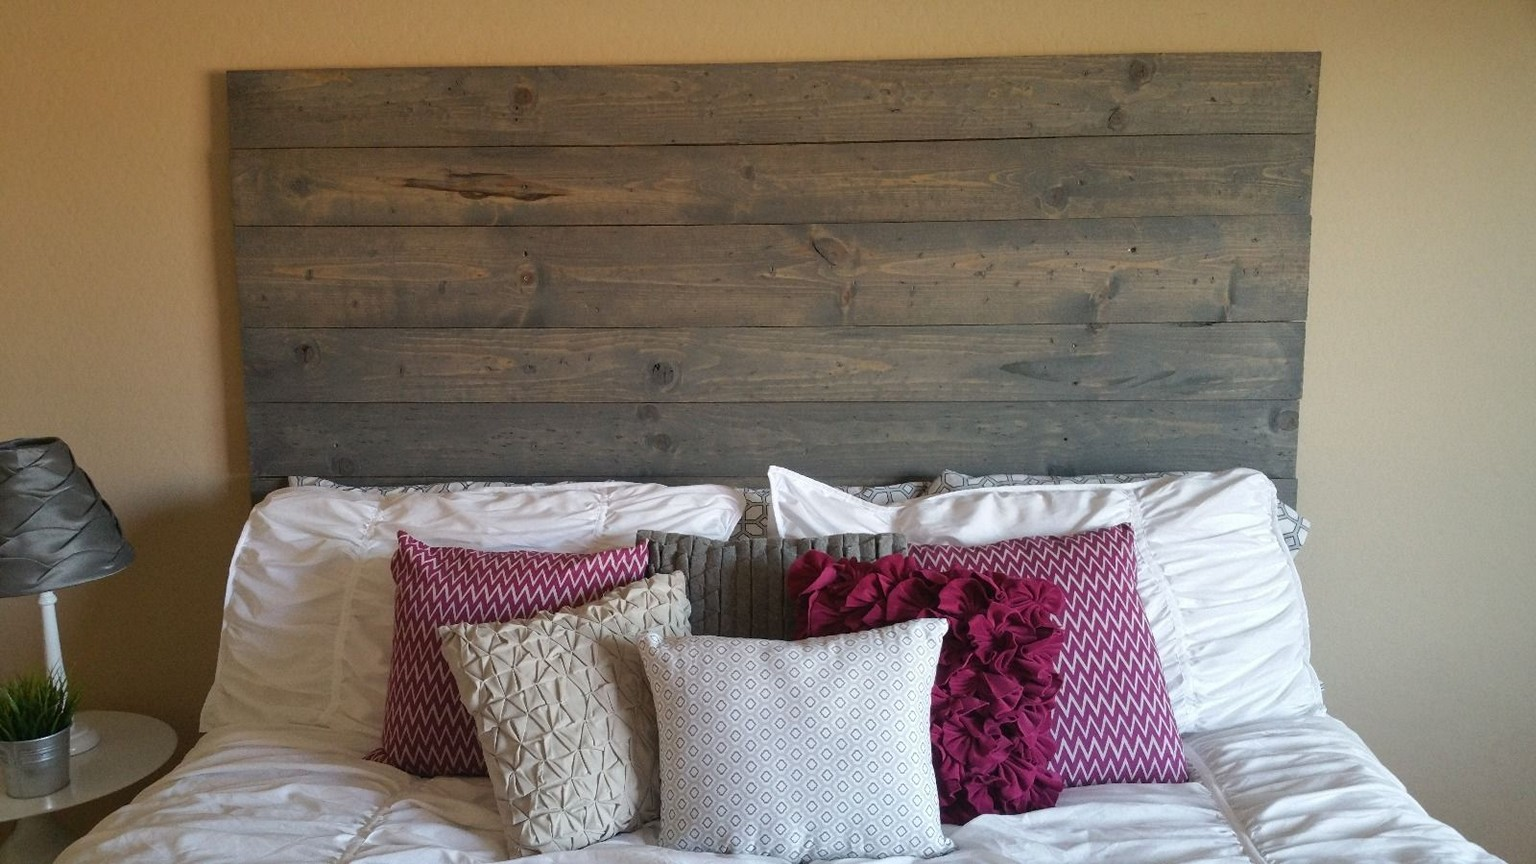 diy-headboard-ideas-4